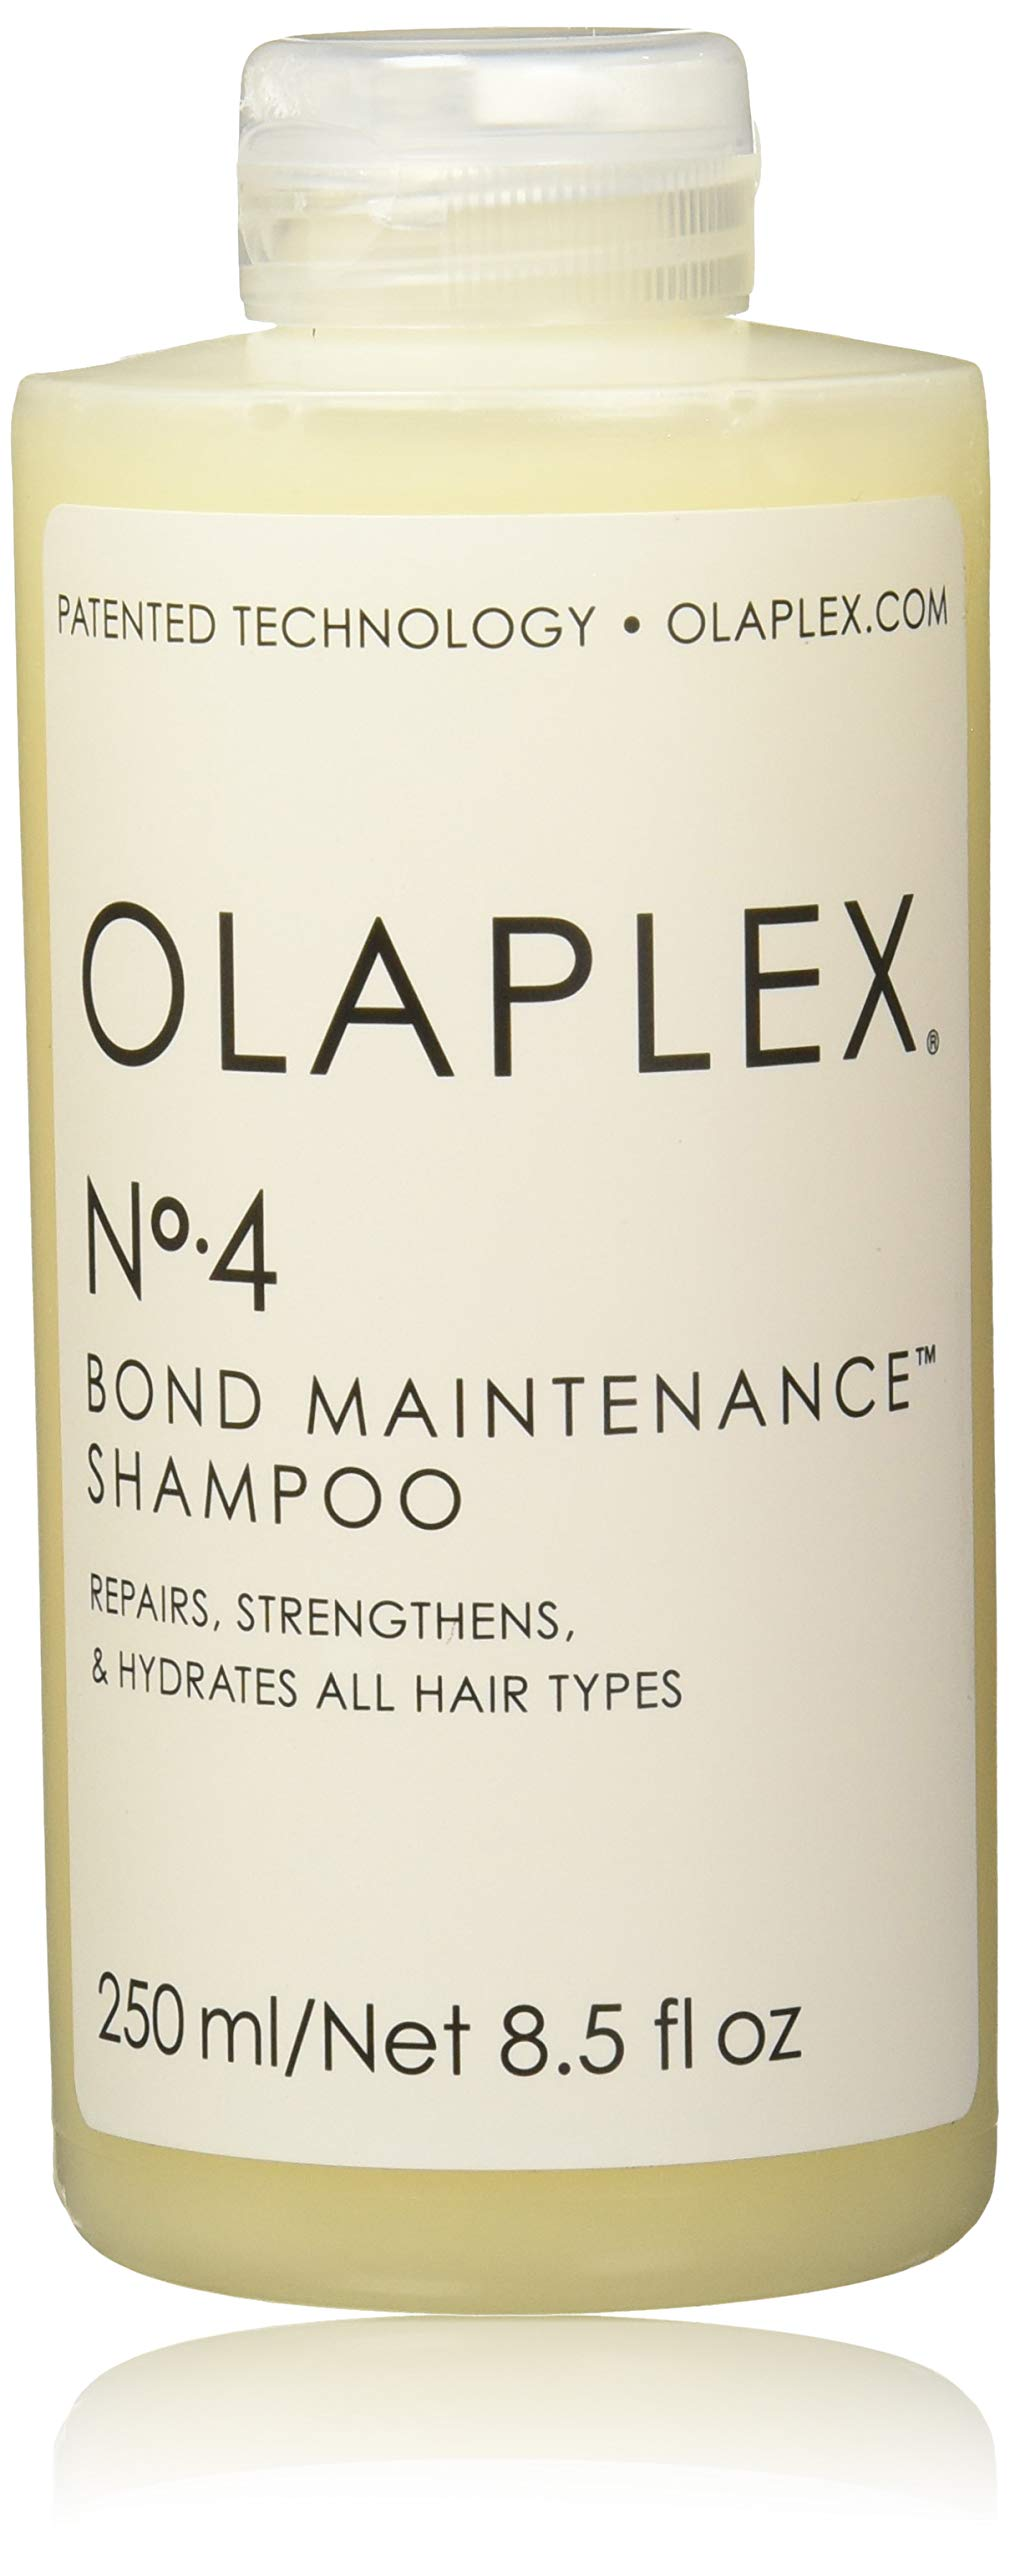 Olaplex No.4 Bond Maintenance Shampoo, 8.5 Fl Oz by Olaplex